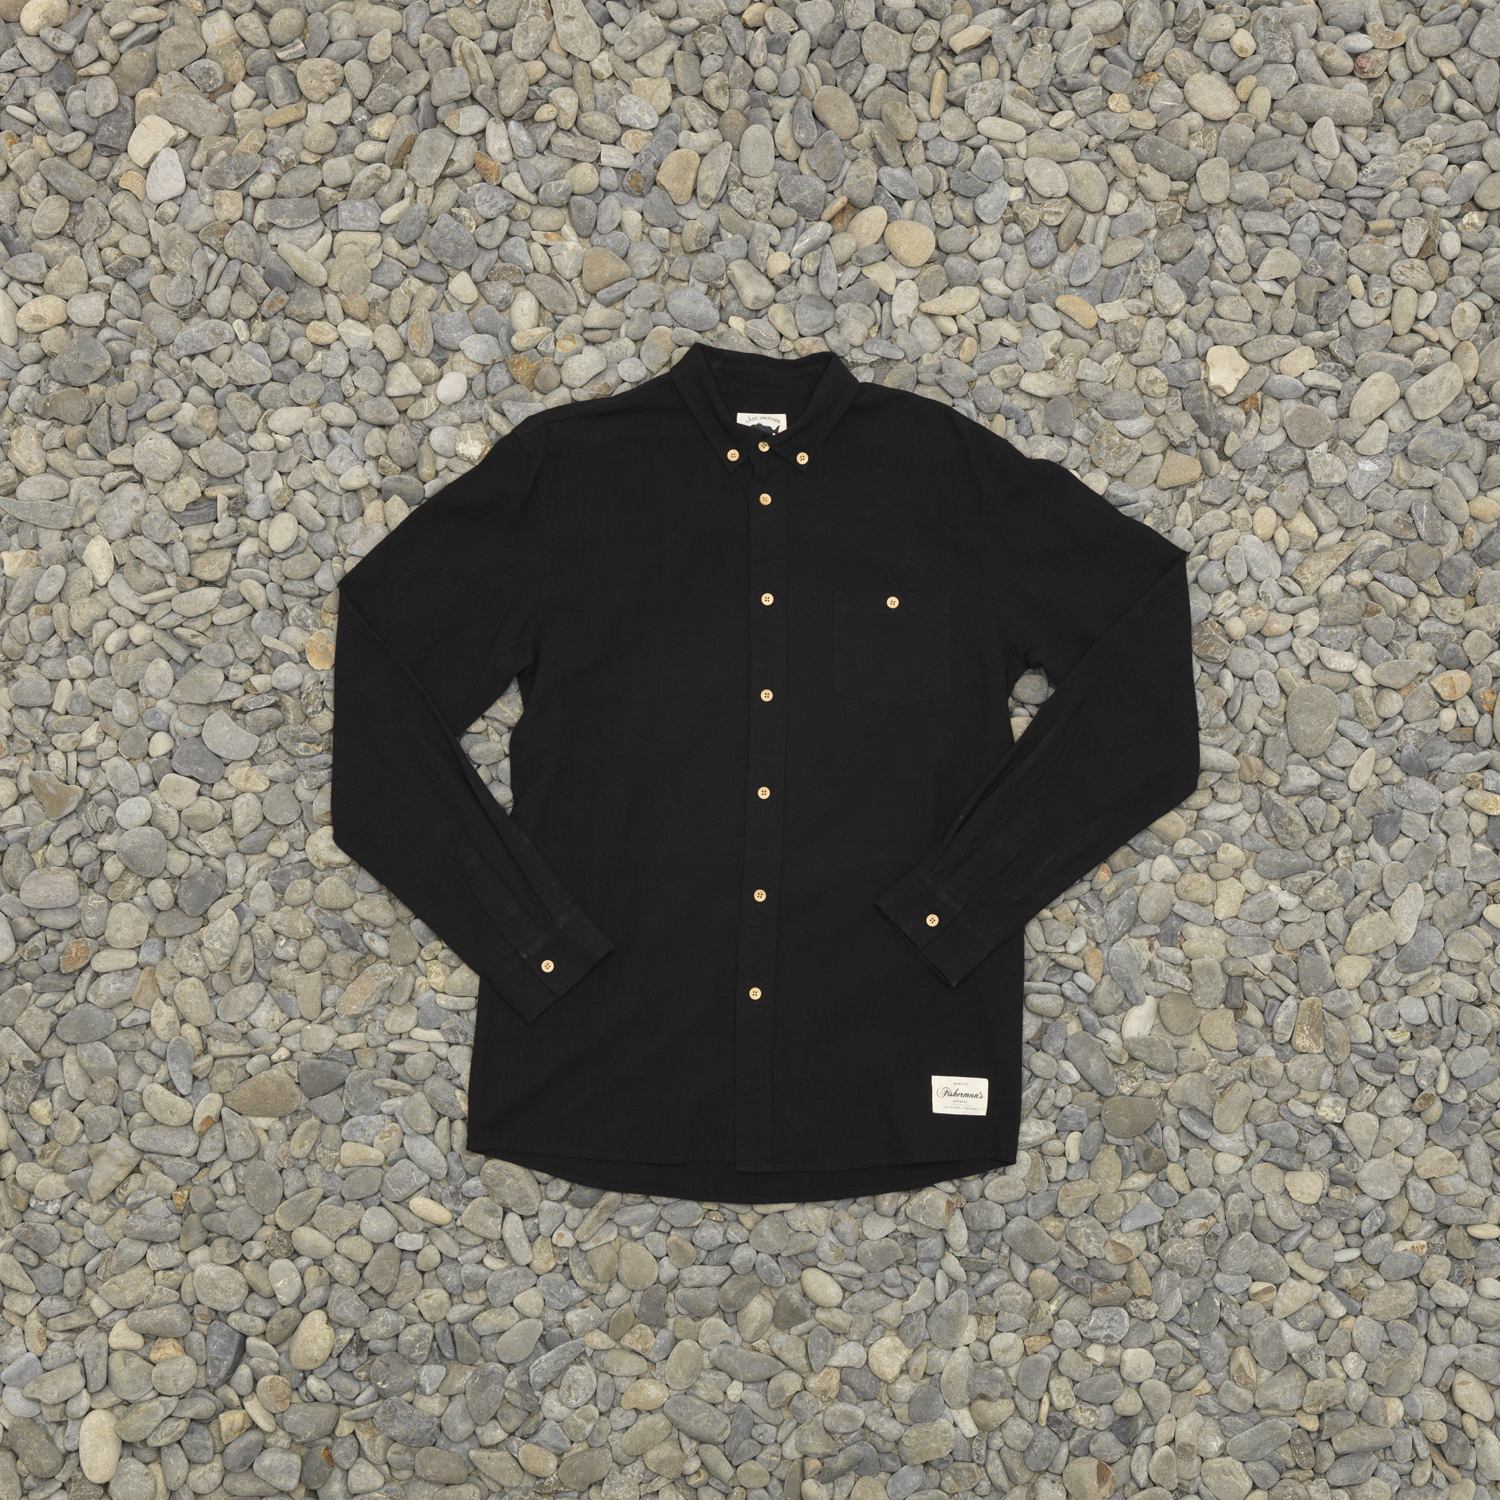 JUST ANOTHER FISHERMAN ANCHORAGE SHIRT BLACK